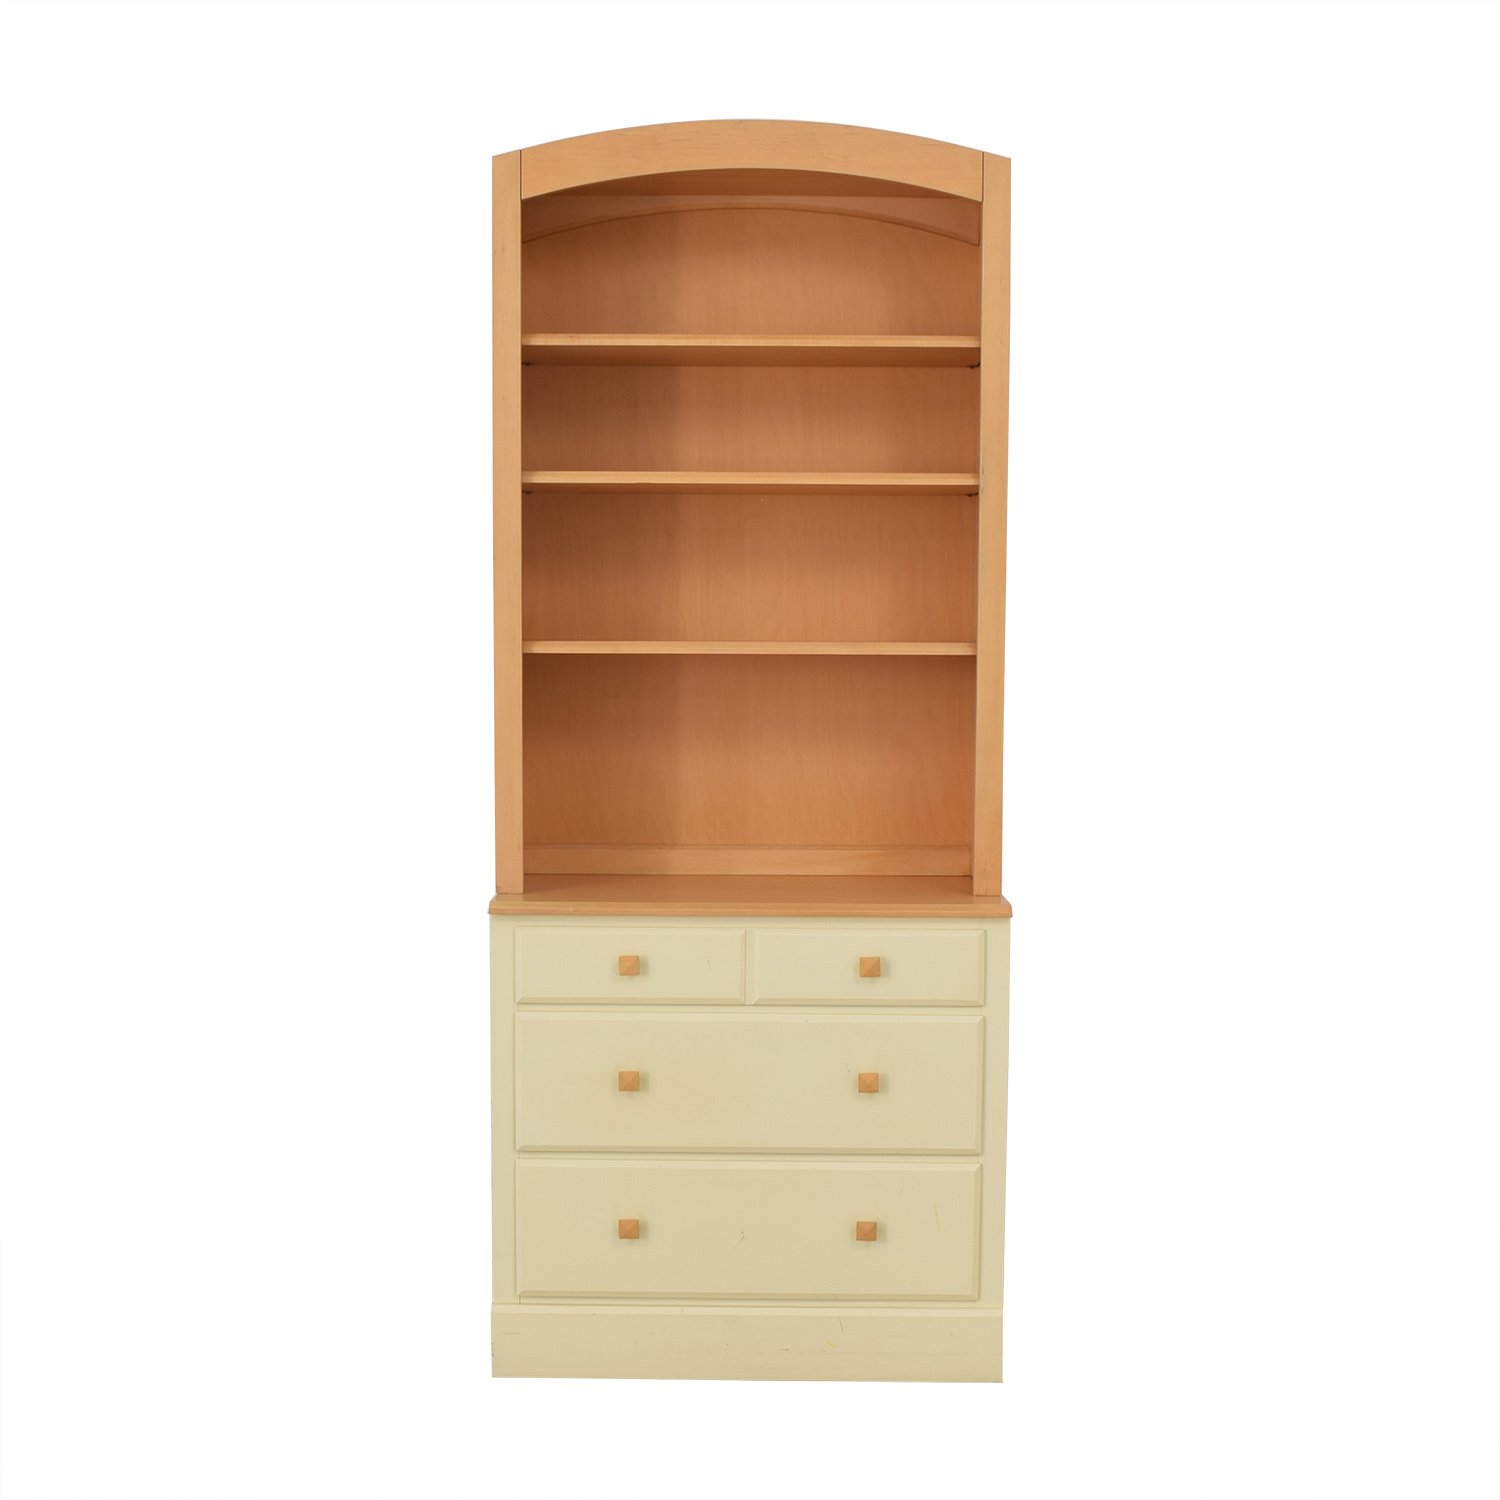 Ethan Allen Ethan Allen Bookcase and Dresser Combination coupon